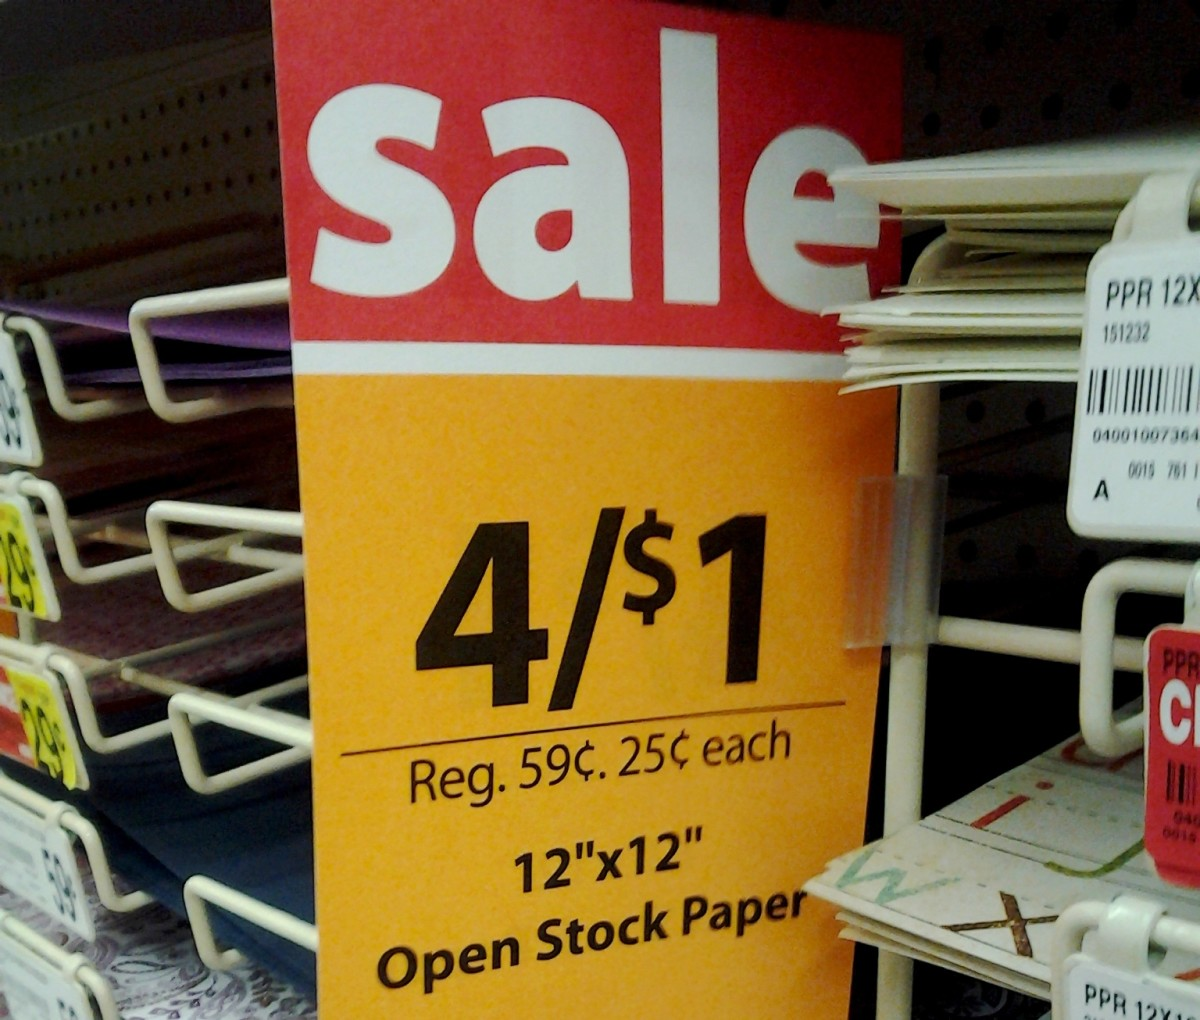 Look out for great savings on scrapbook supplies!